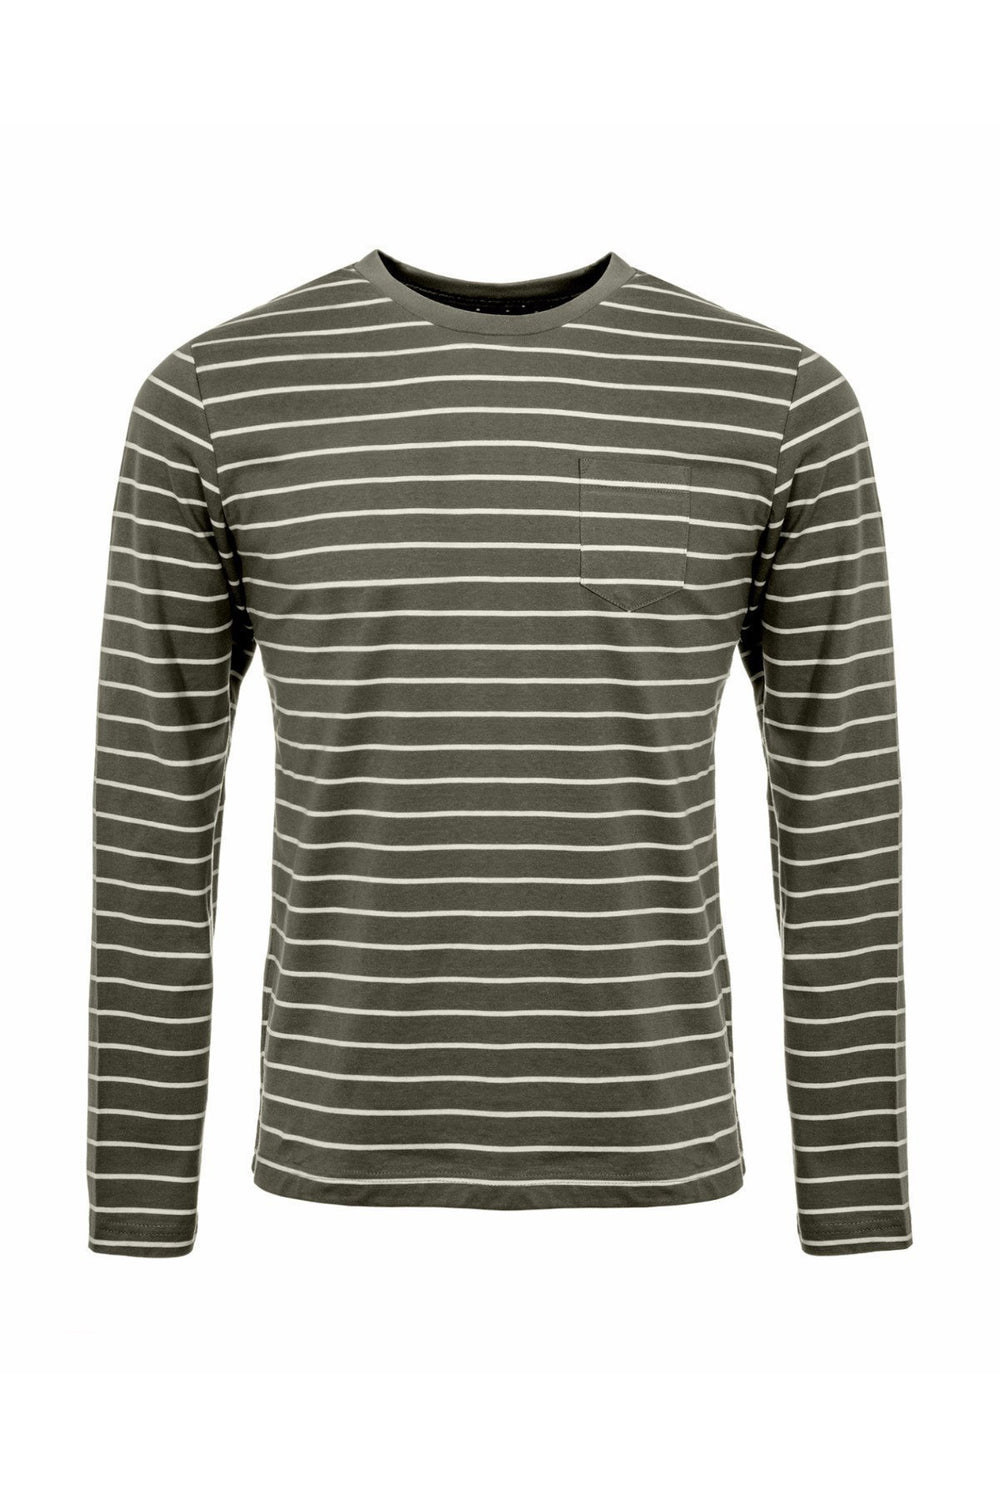 T-Shirts - Long Sleeve T-Shirt Stripe Light Khaki